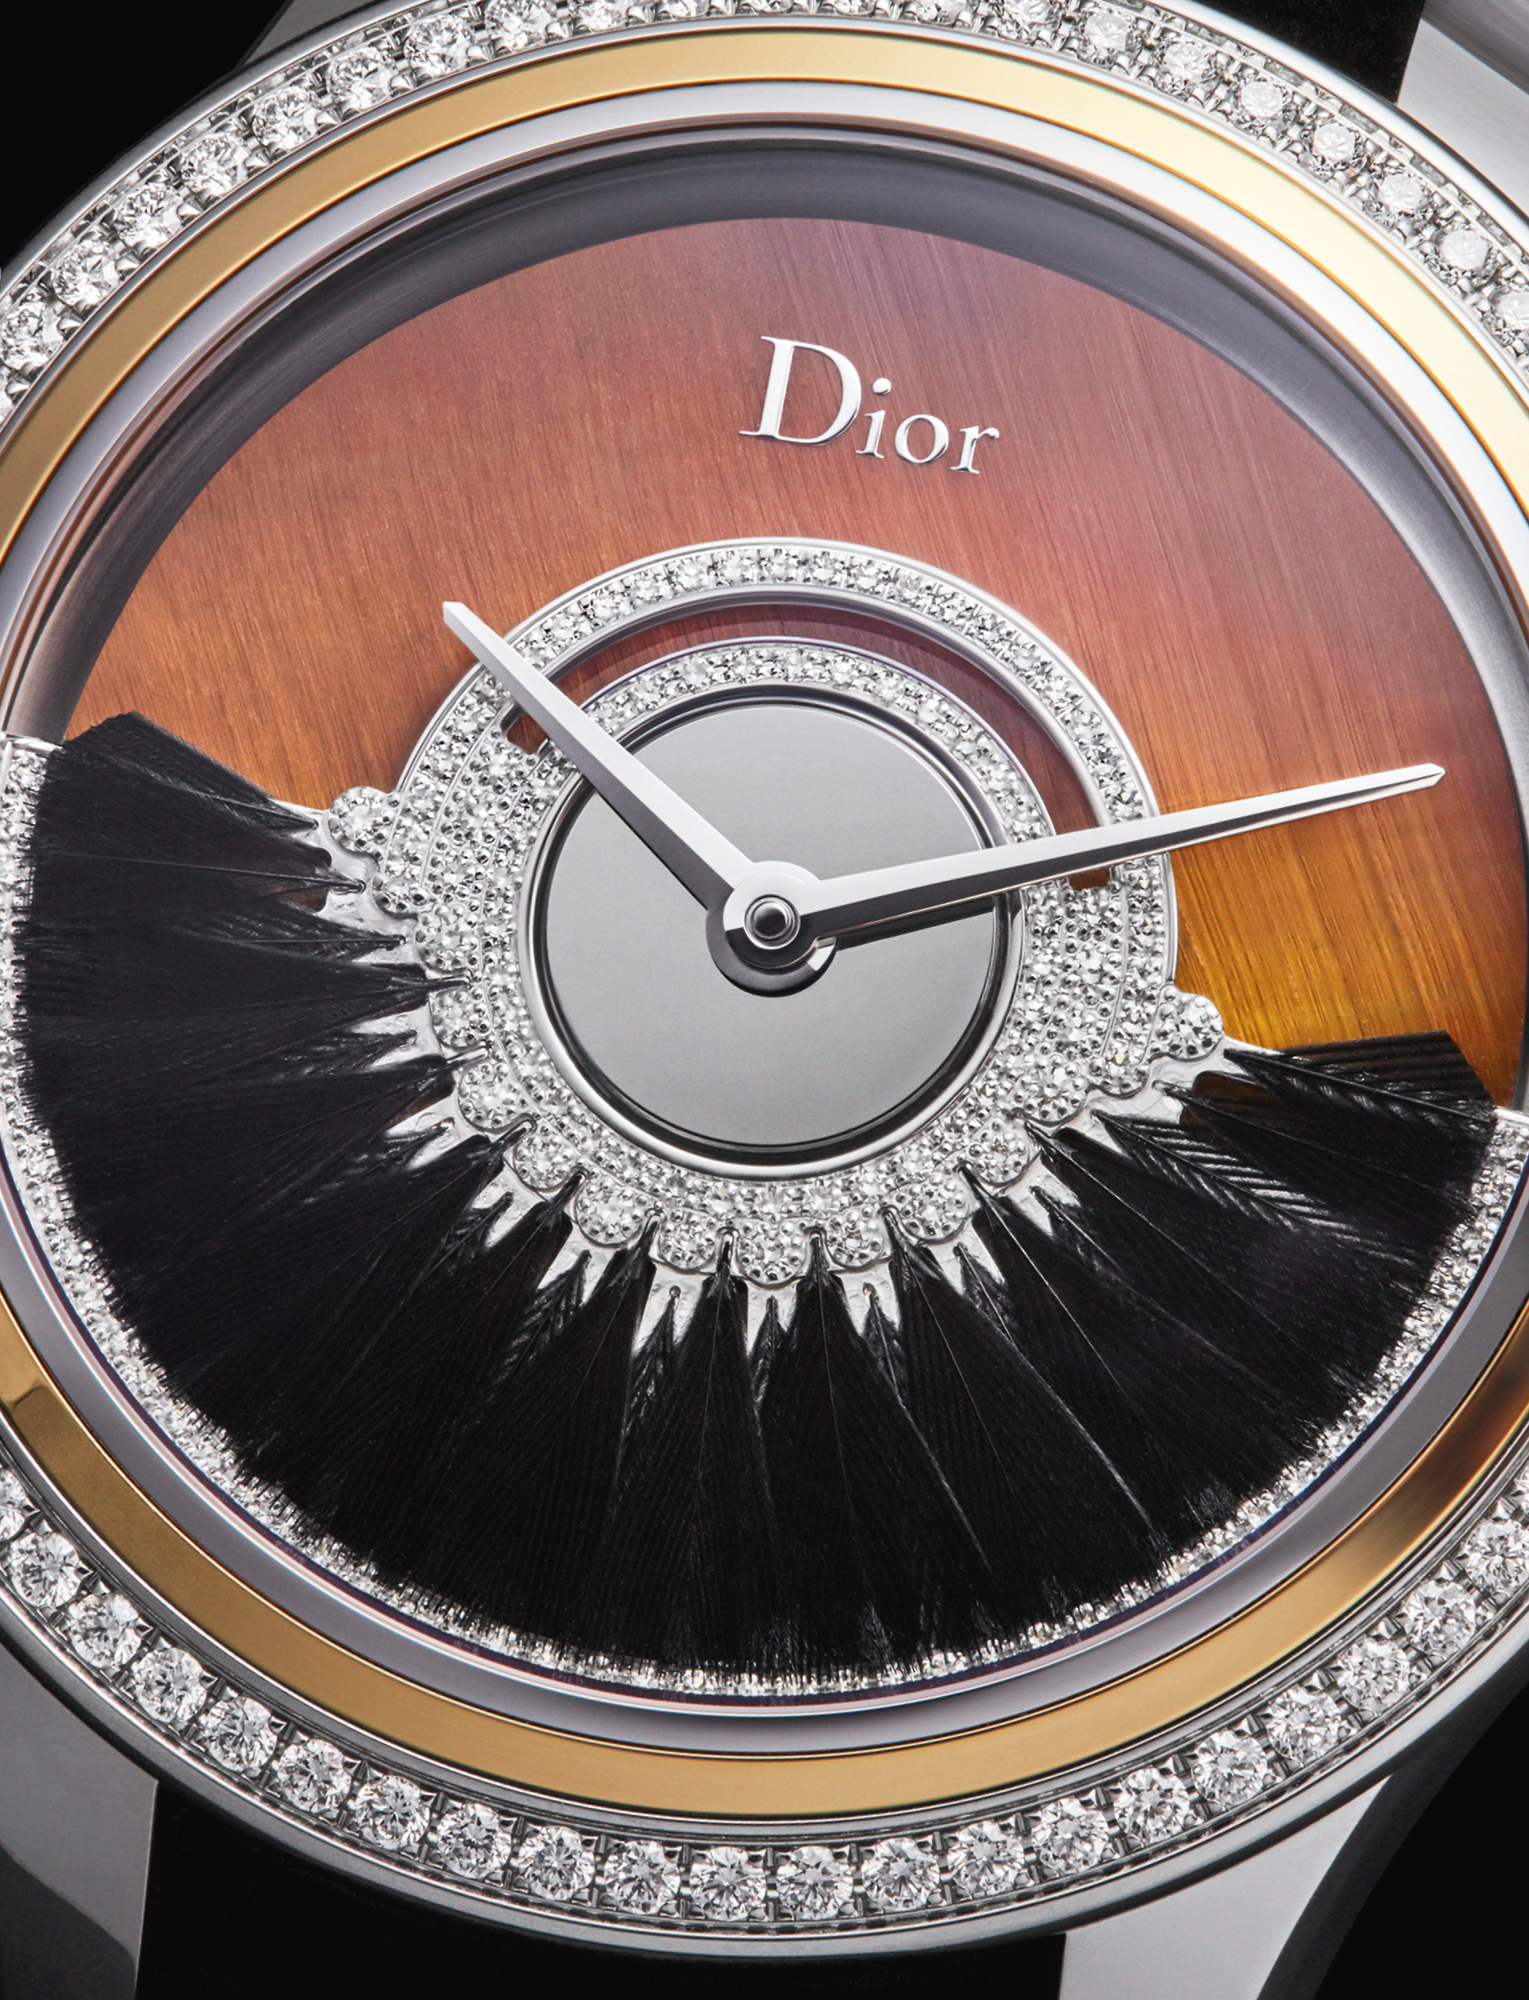 Dior's 36mm Grand Bal Plume has an automatic movement featuring black feathers set on an oscillating weight recreating the swirl of a ball gown. It features a tiger's eye stone dial with diamonds and is limited to 88 pieces. £23,600, DIOR